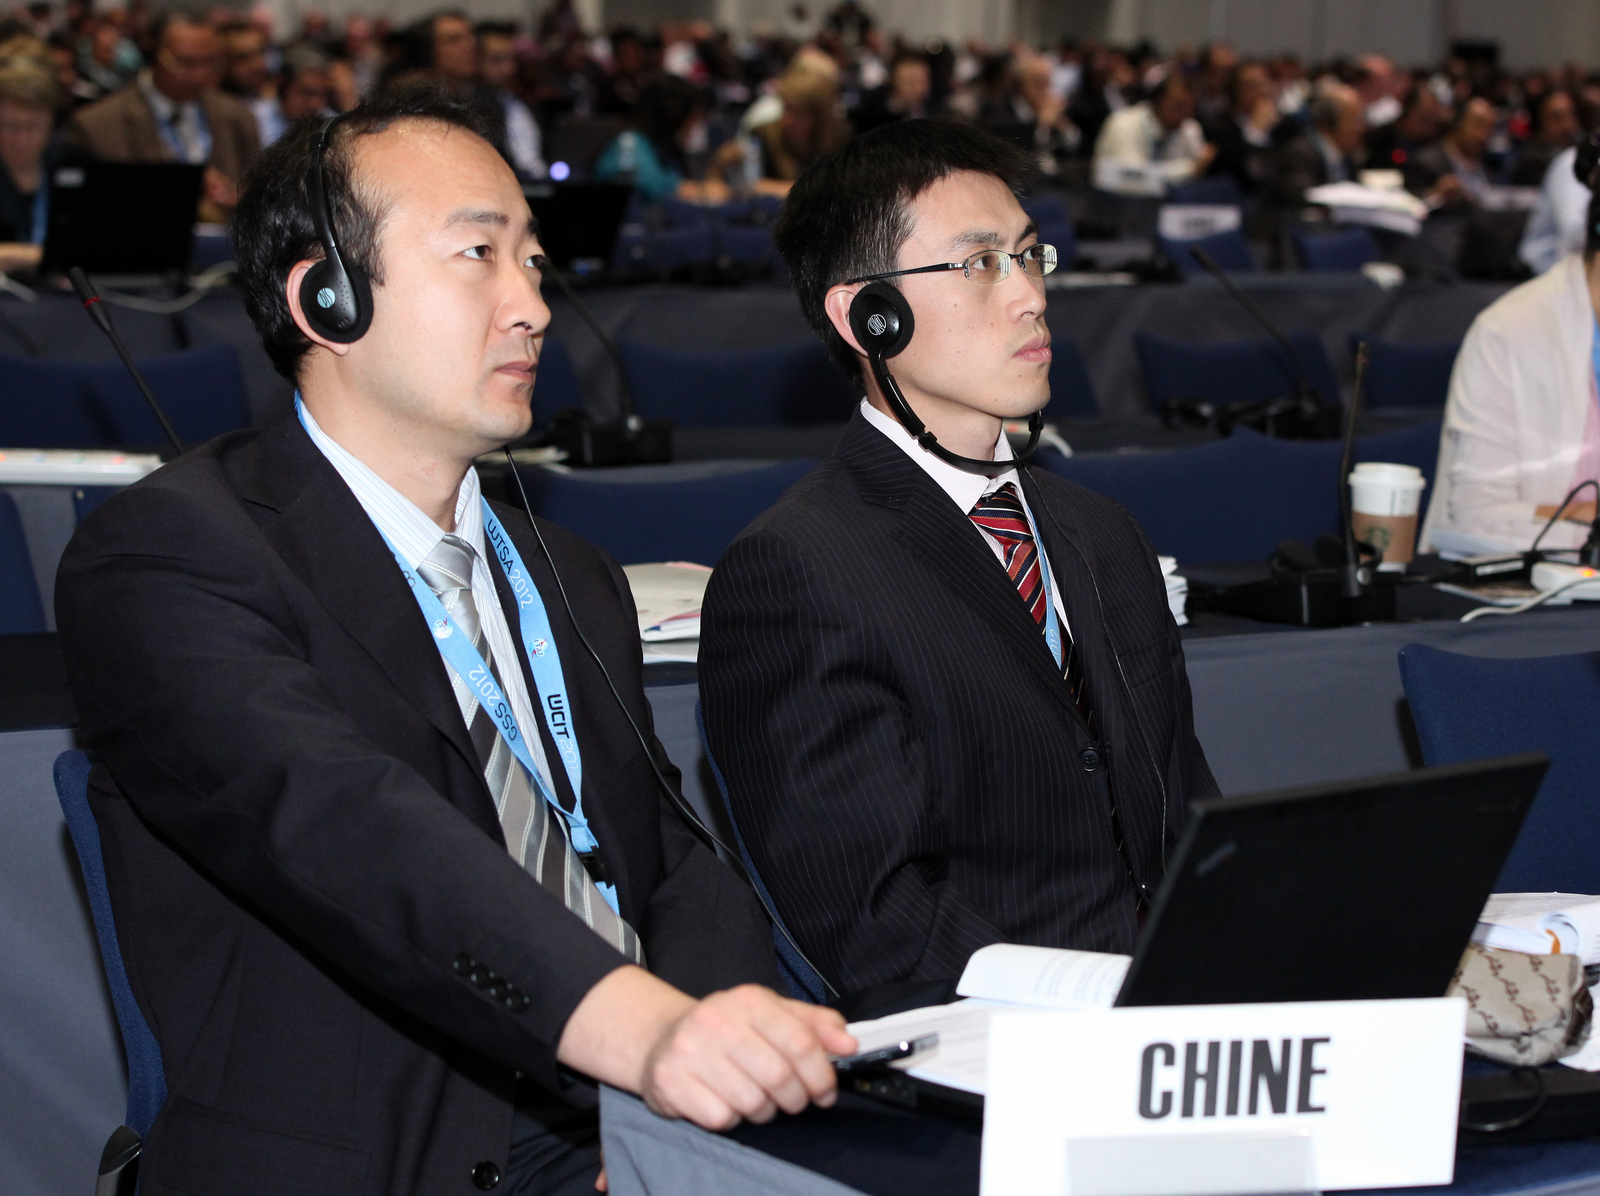 """China's delegation, shown here at the Dubai summit that ends Friday, cited the """"security of the state"""" when objecting to human rights language."""